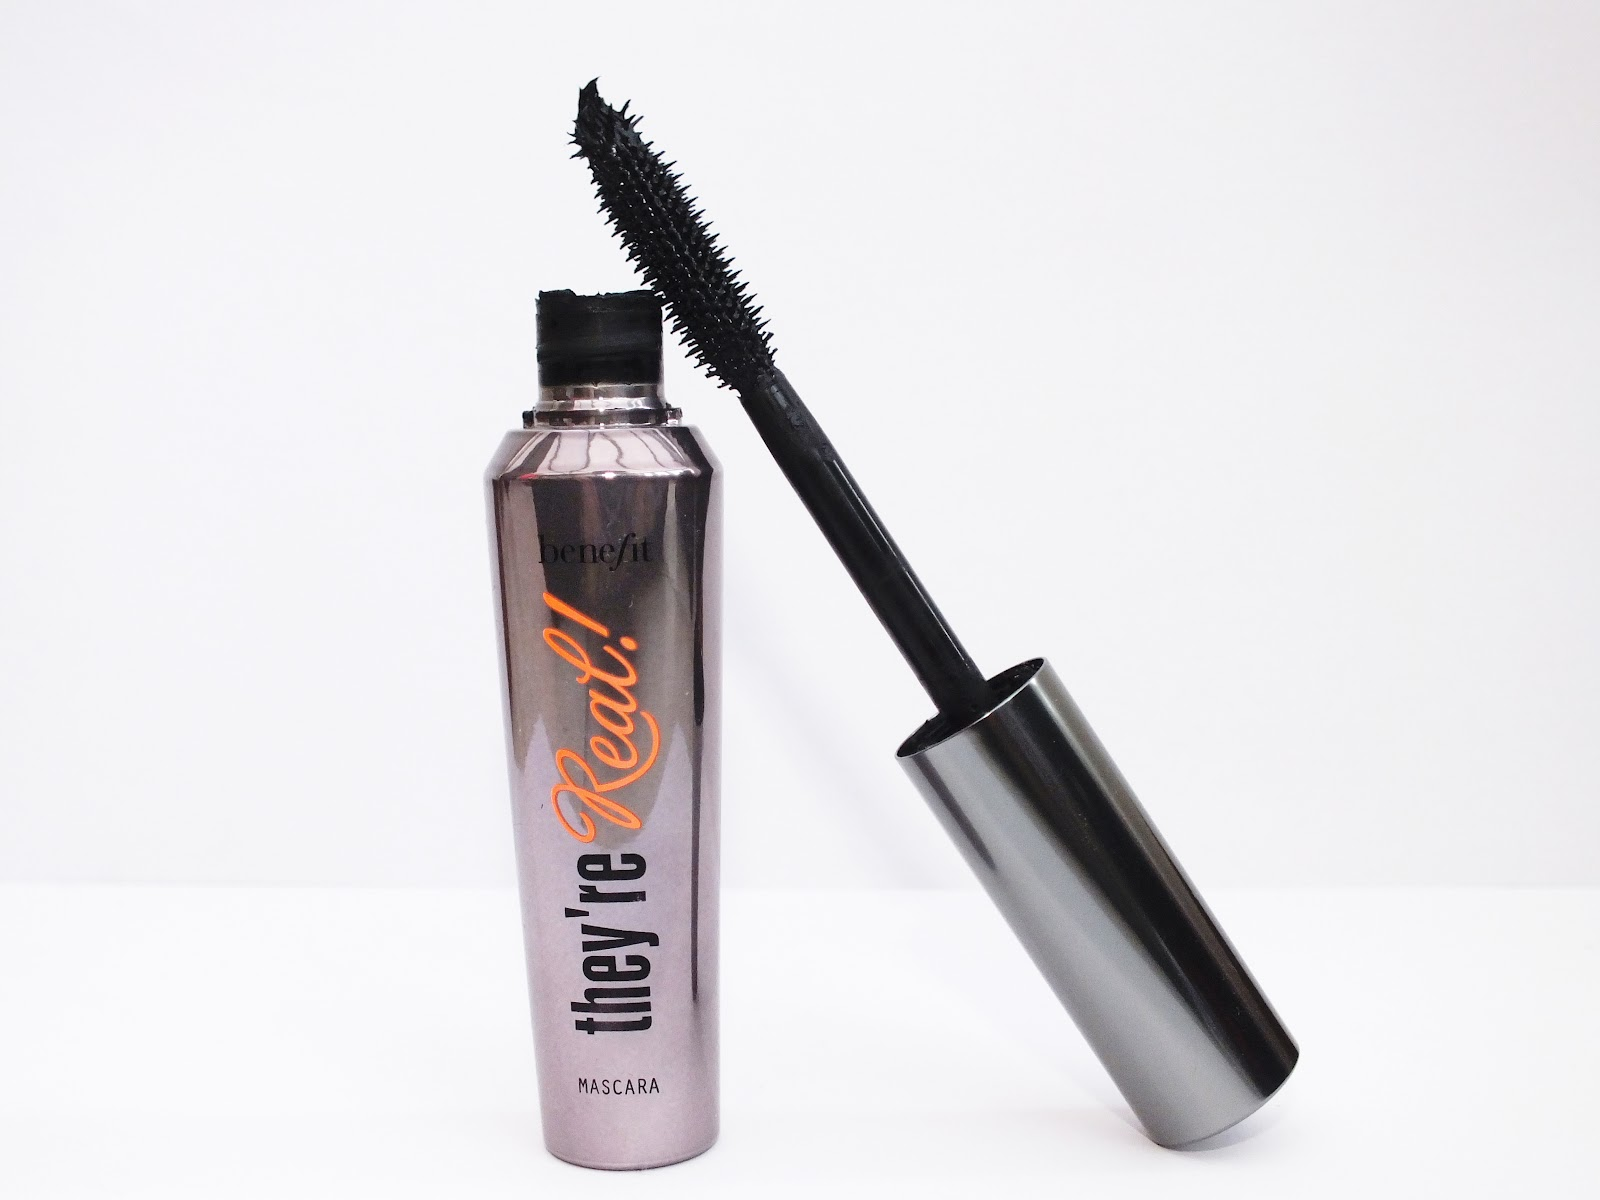 Benefit Eye Mascara hd image